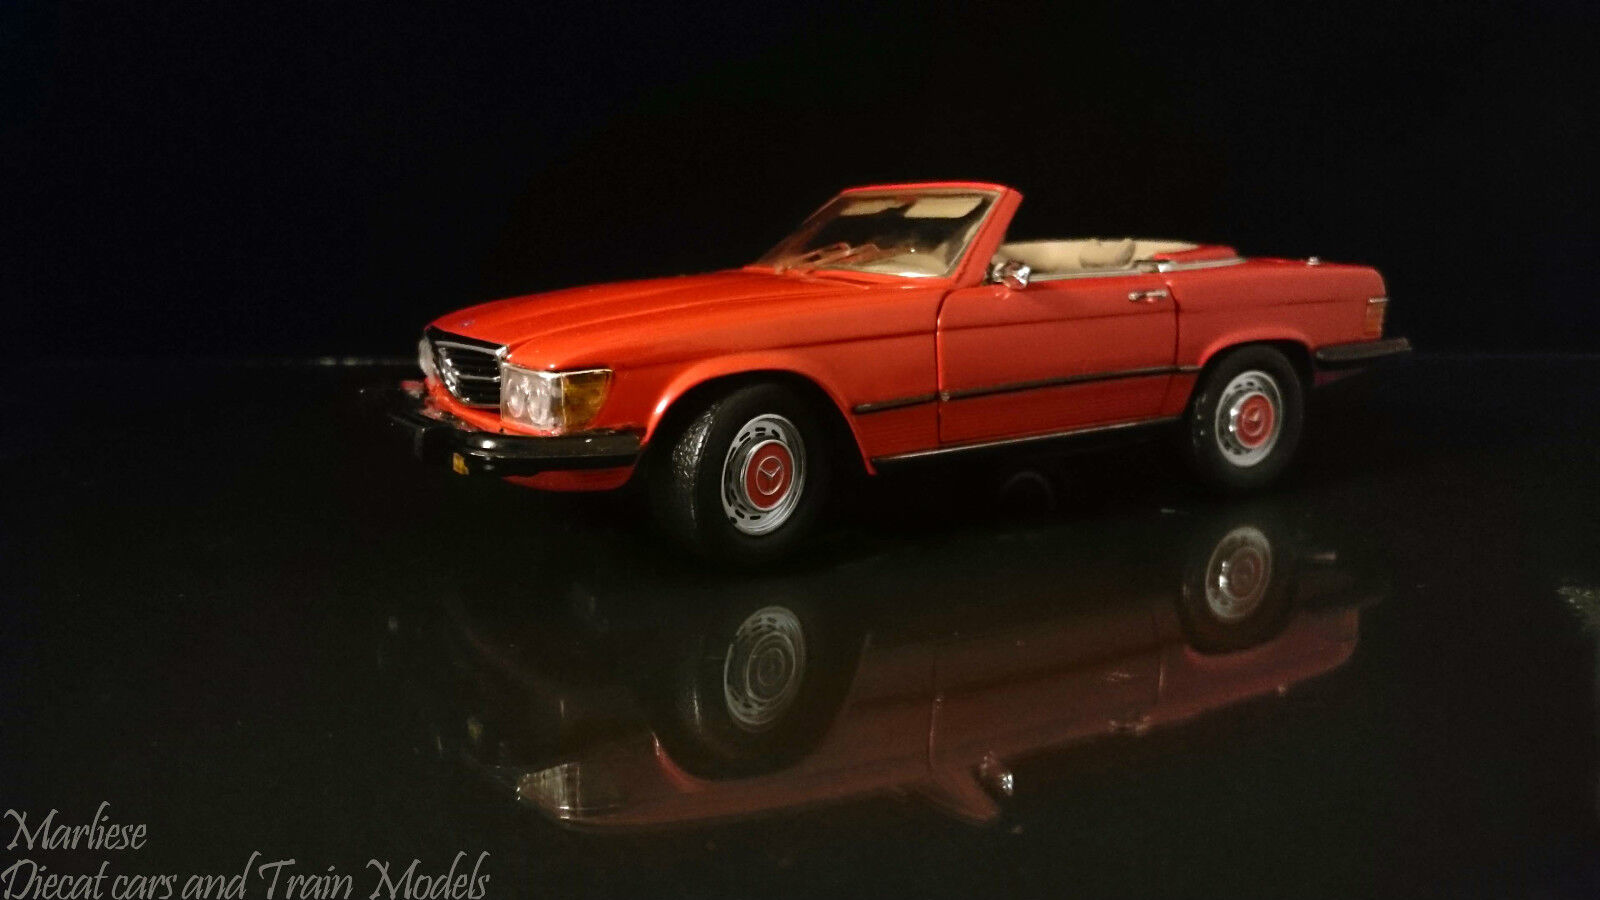 Scary Scarce CMC 1 24 M-012 Mercedes-Benz 450SL, US Version, 1973 80 - rot